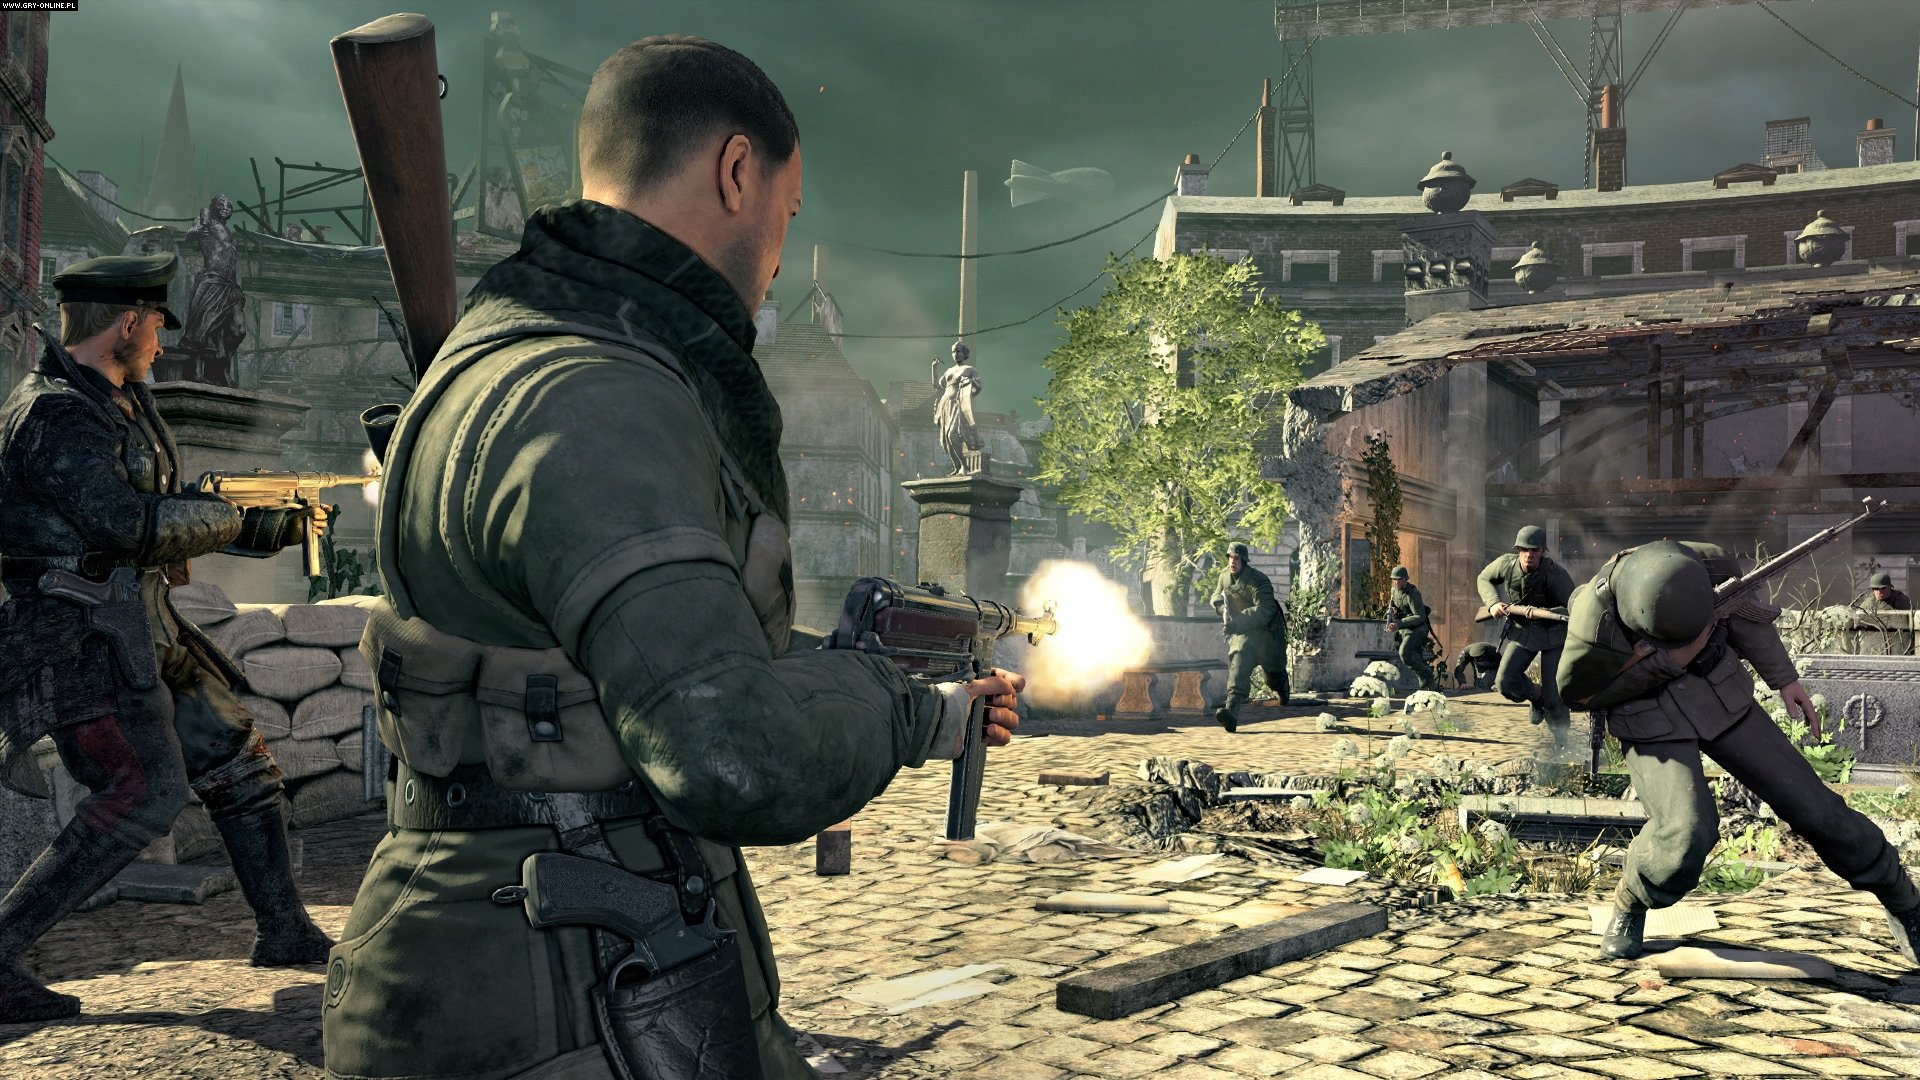 Sniper Elite V2 Remastered PC, PS4, XONE, Switch Games Image 5/13, Rebellion